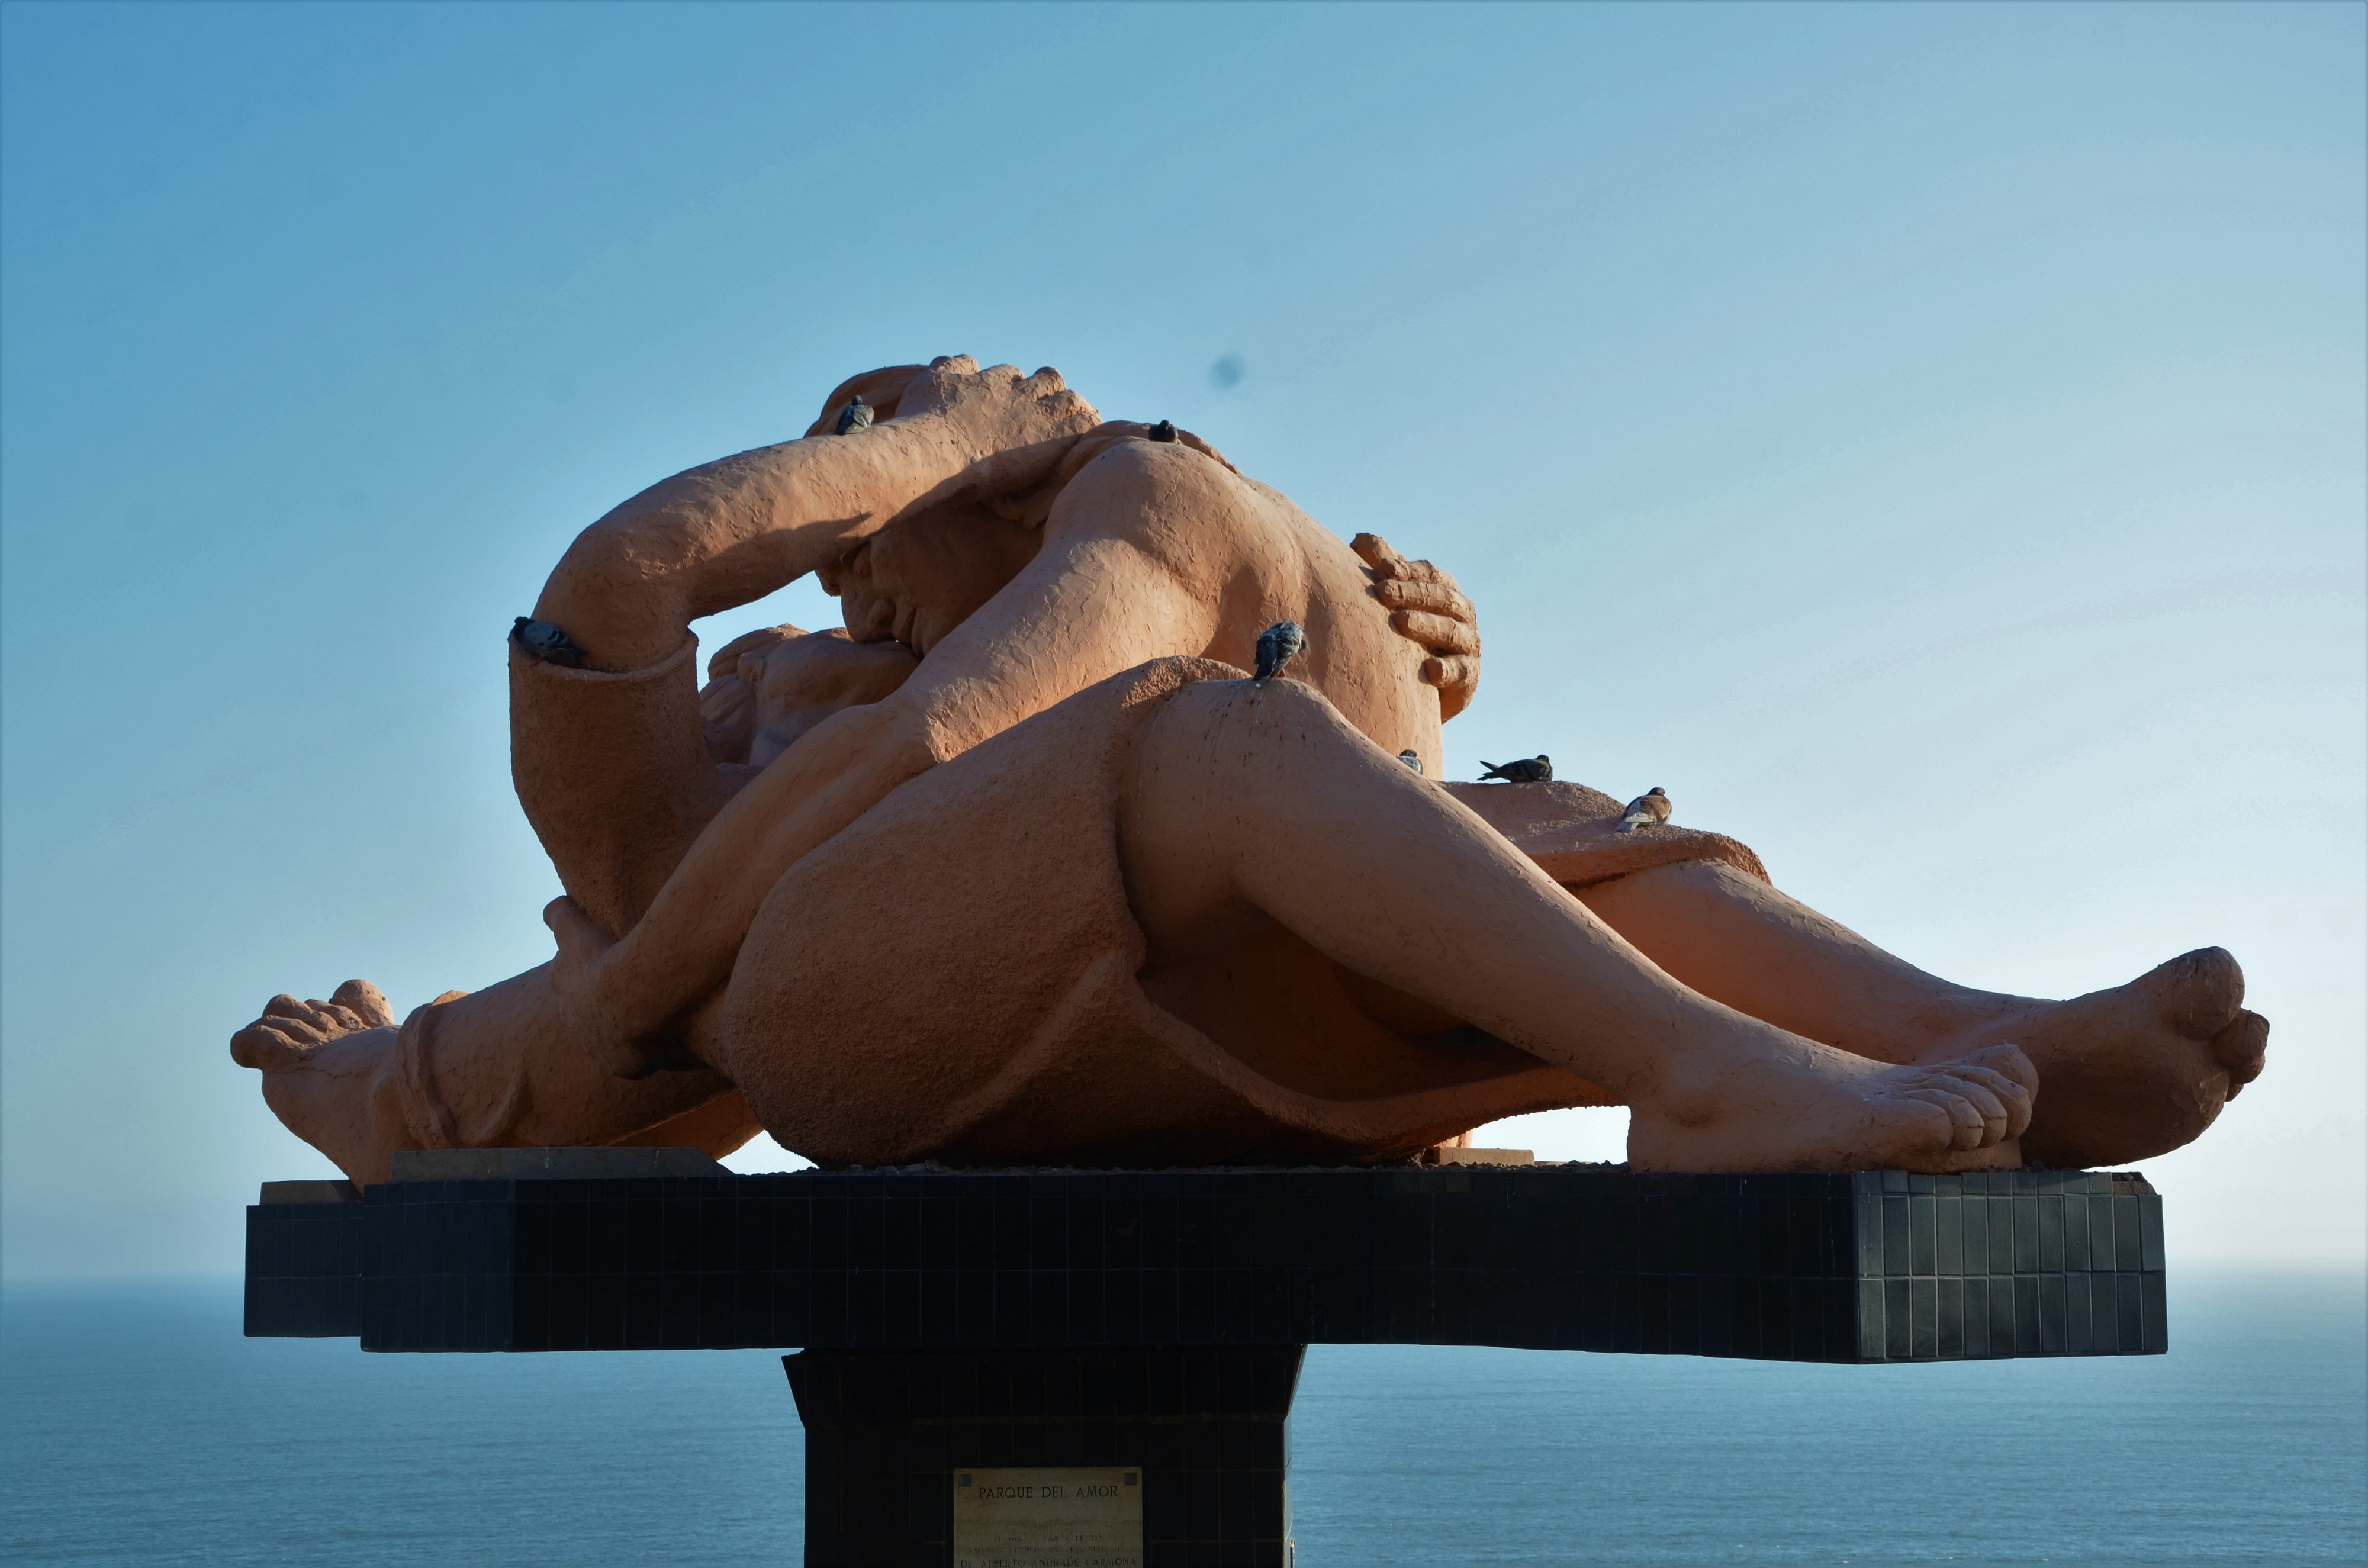 Sculpture of two people embracing and kissing